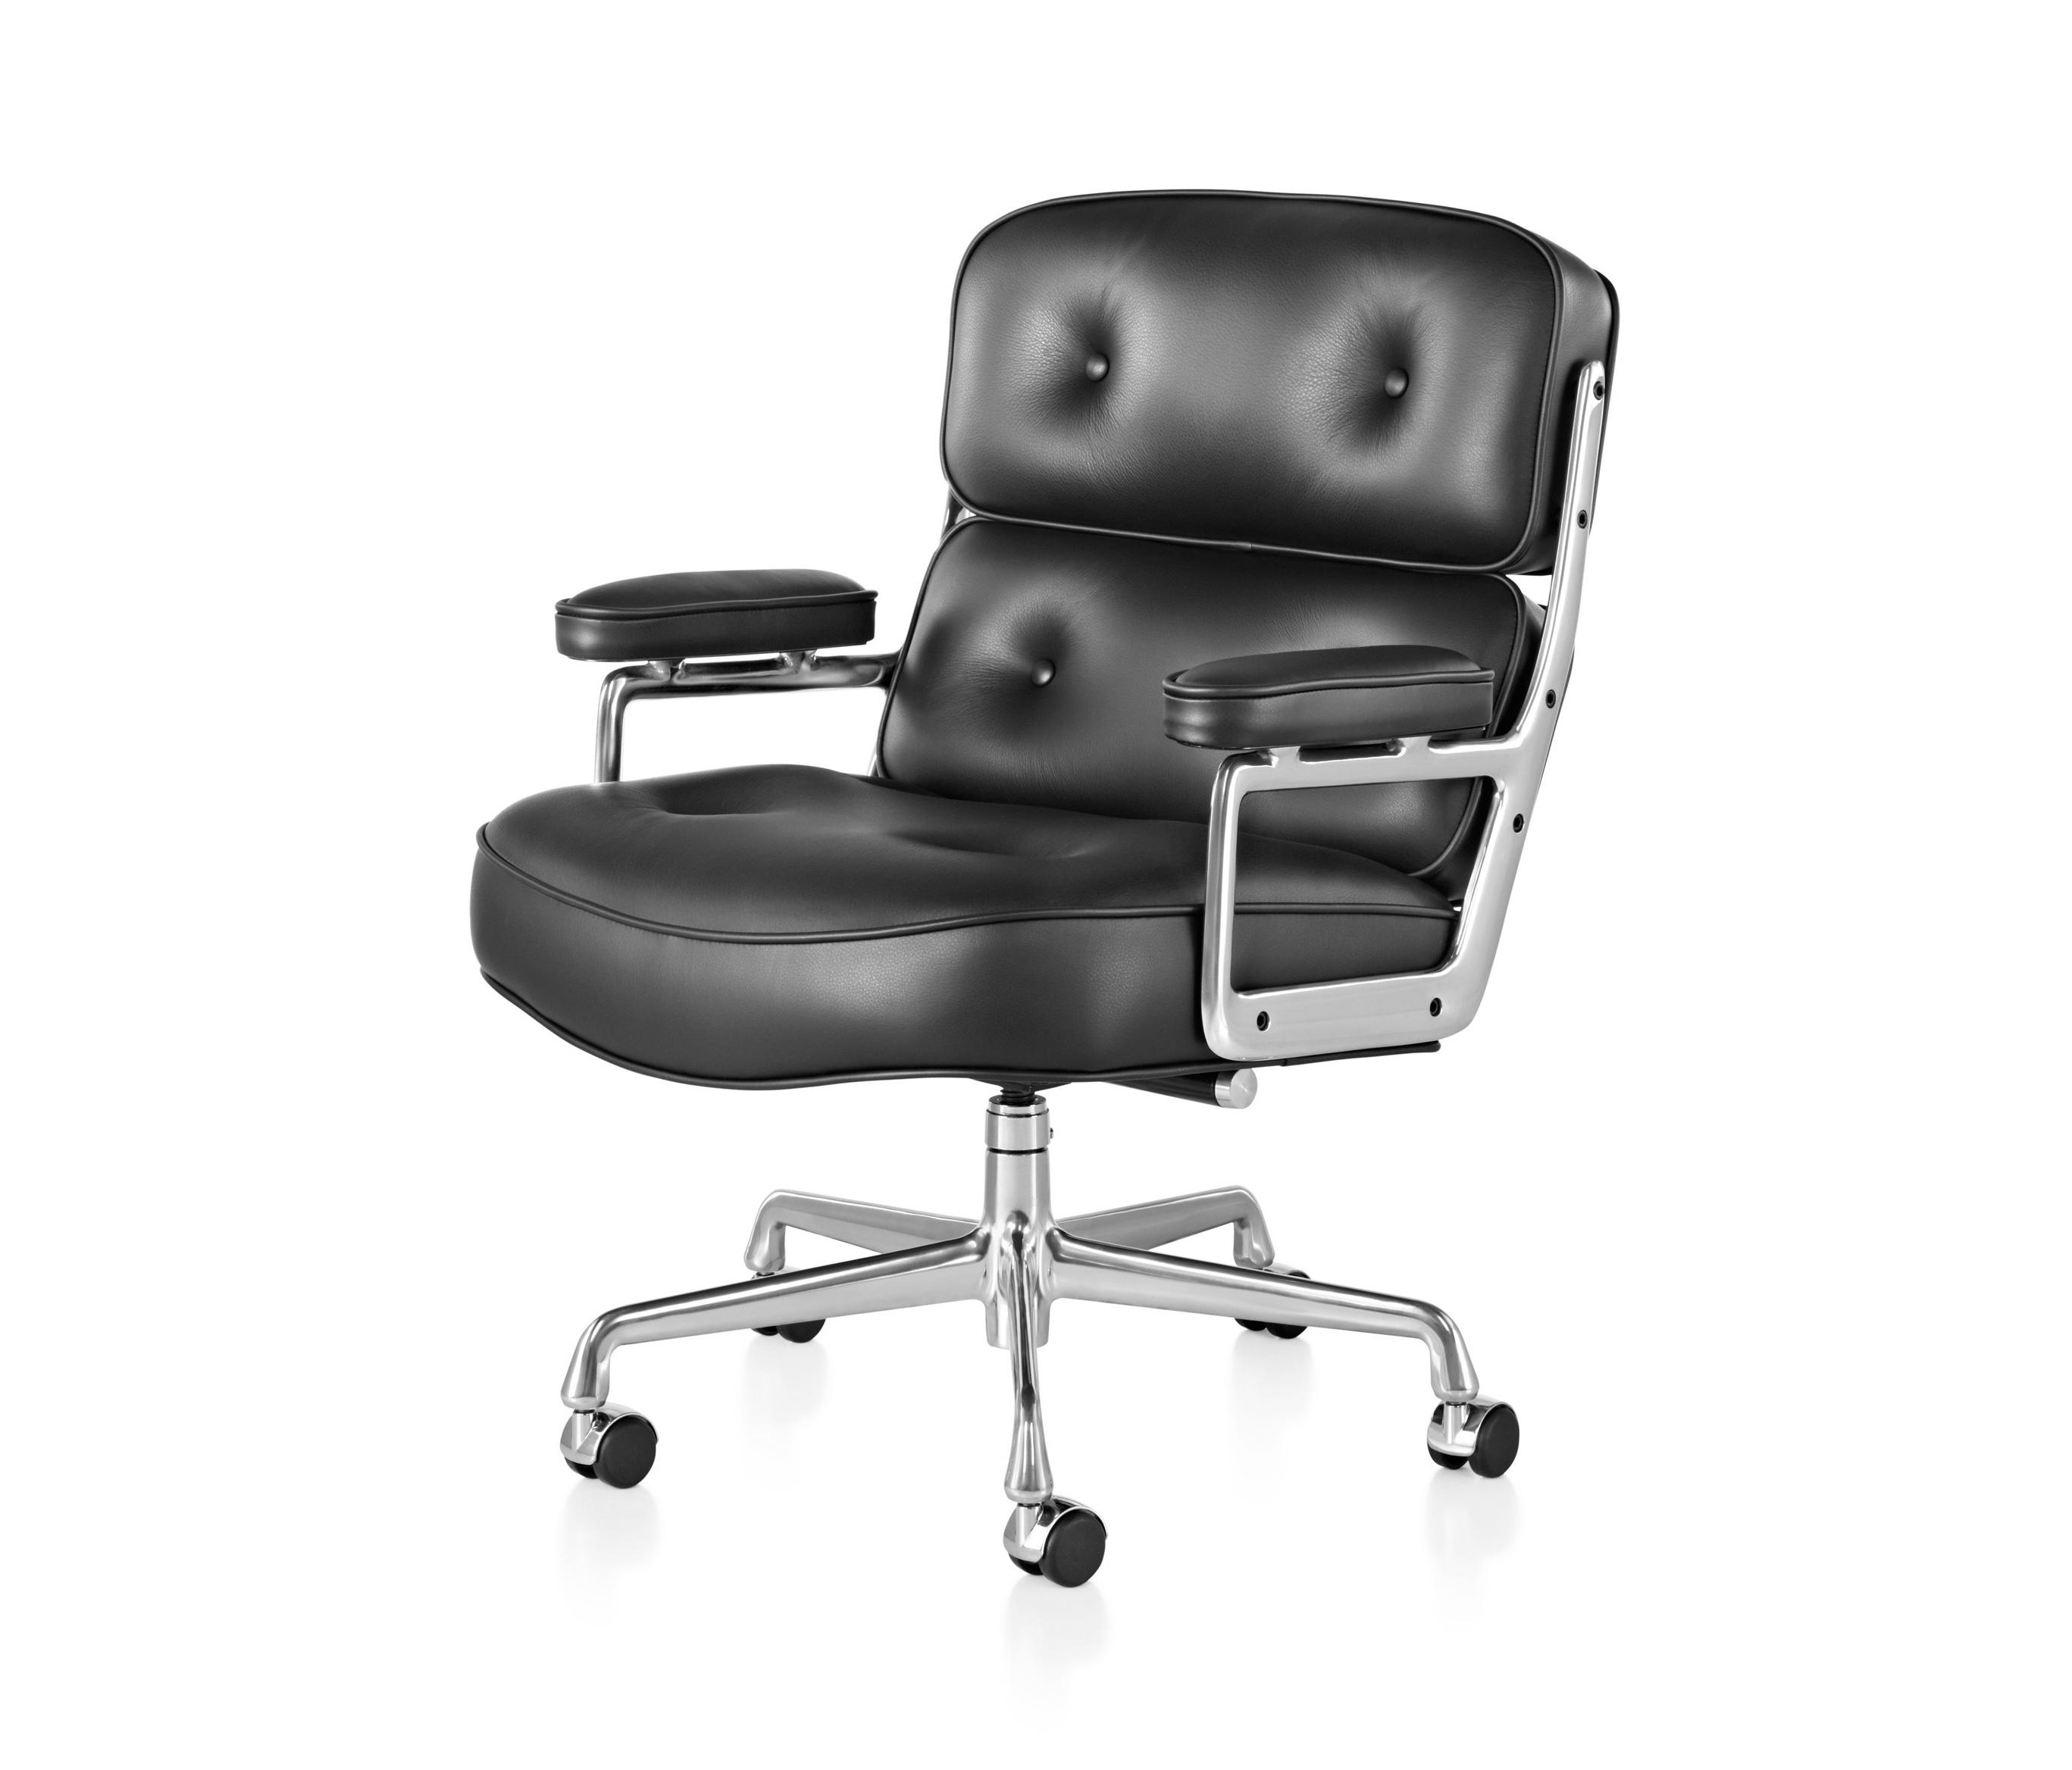 Eames Executive Chair By Herman Miller | Chairs